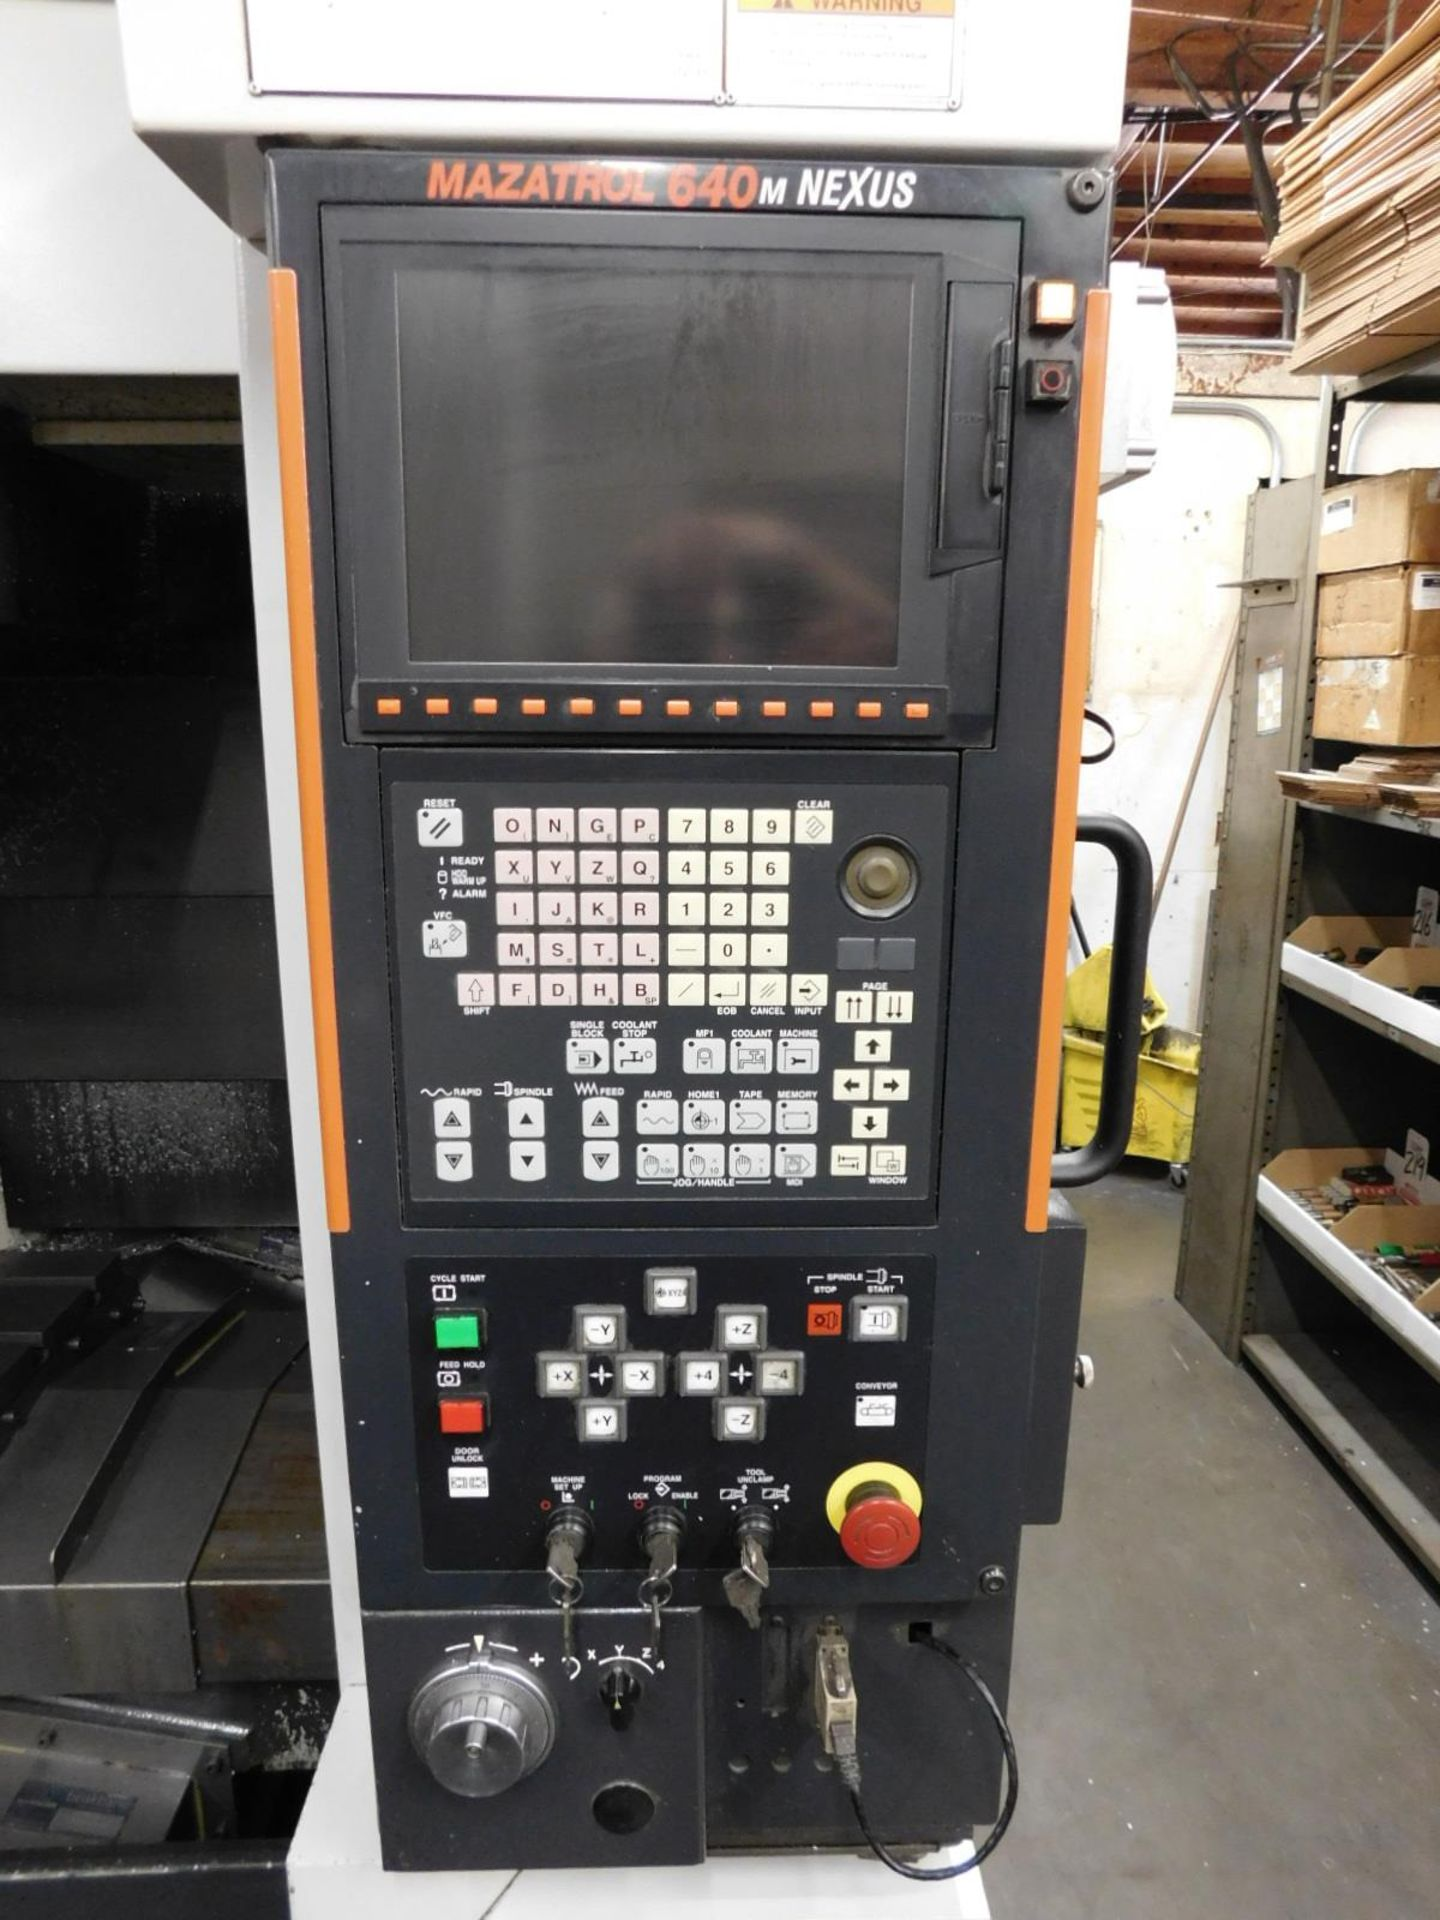 2005 MAZAK NEXUS VCN 410A CNC VERTICAL MACHINING CENTER, MAZATROL FUSION 640M NEXUS CNC CONTROL, XYZ - Image 4 of 15